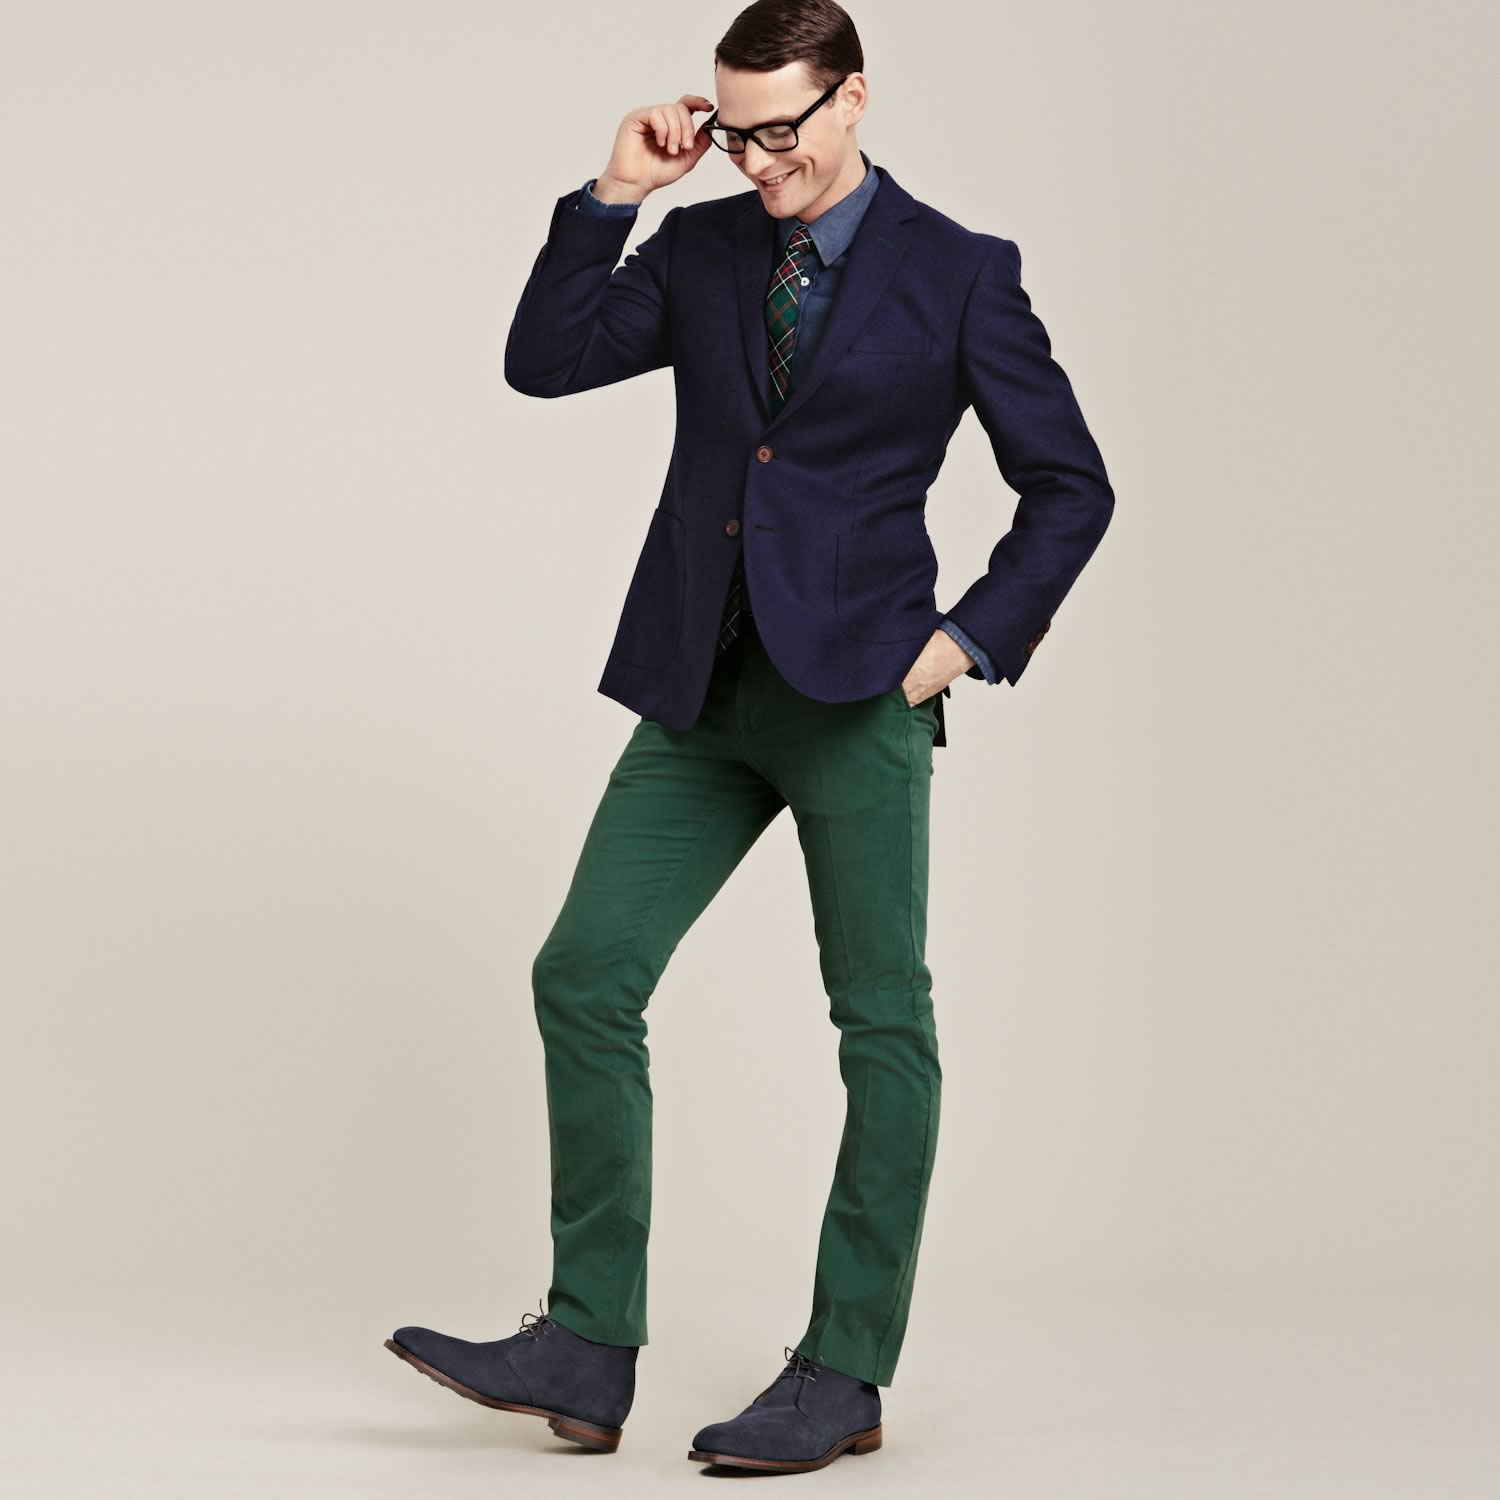 Shop for special offer coupons from Charles Tyrwhitt of Jermyn Street, London - the /10 (K reviews).